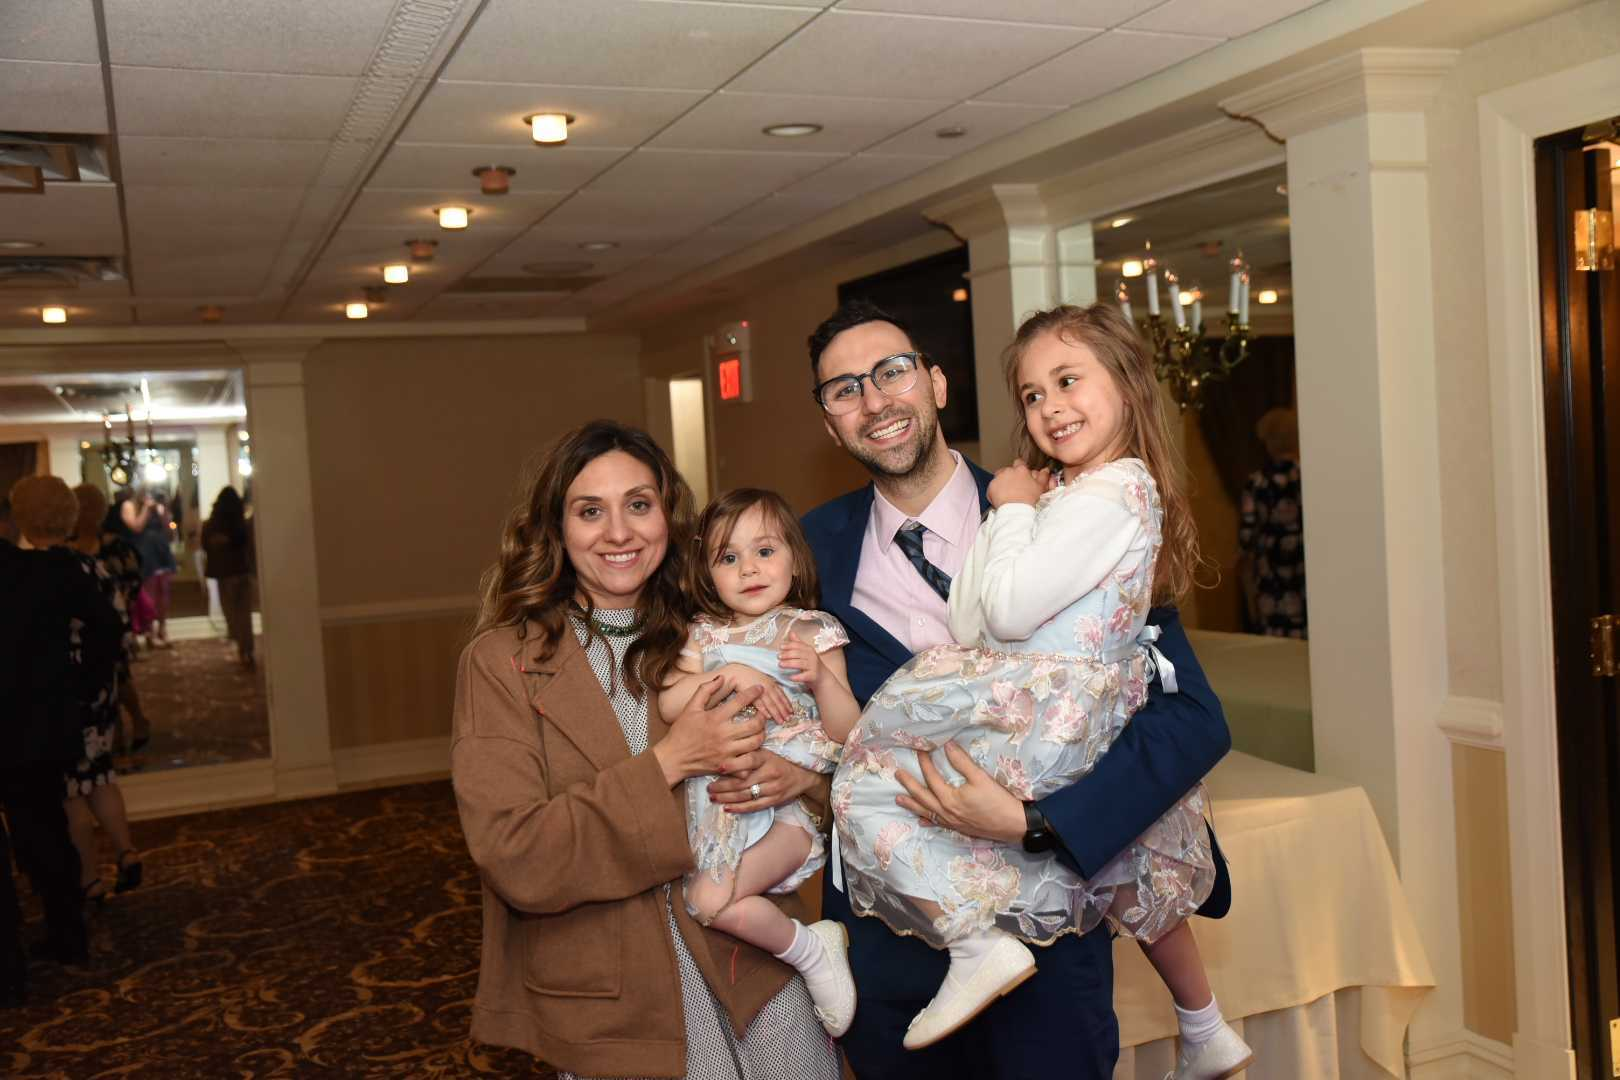 Pasquale with his wife and two daughters